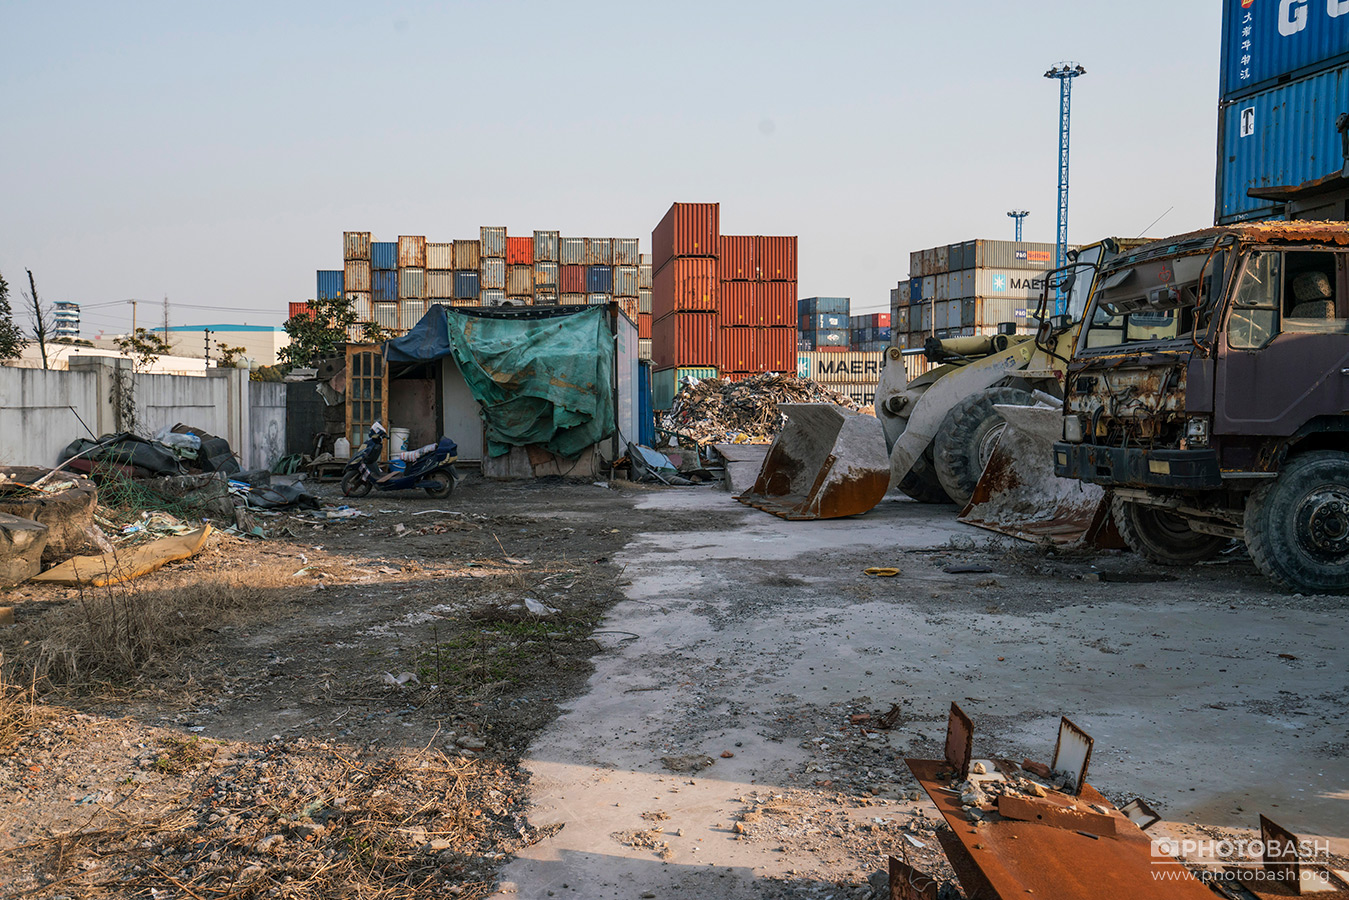 Shipping-Containers-Harbor-Location.jpg